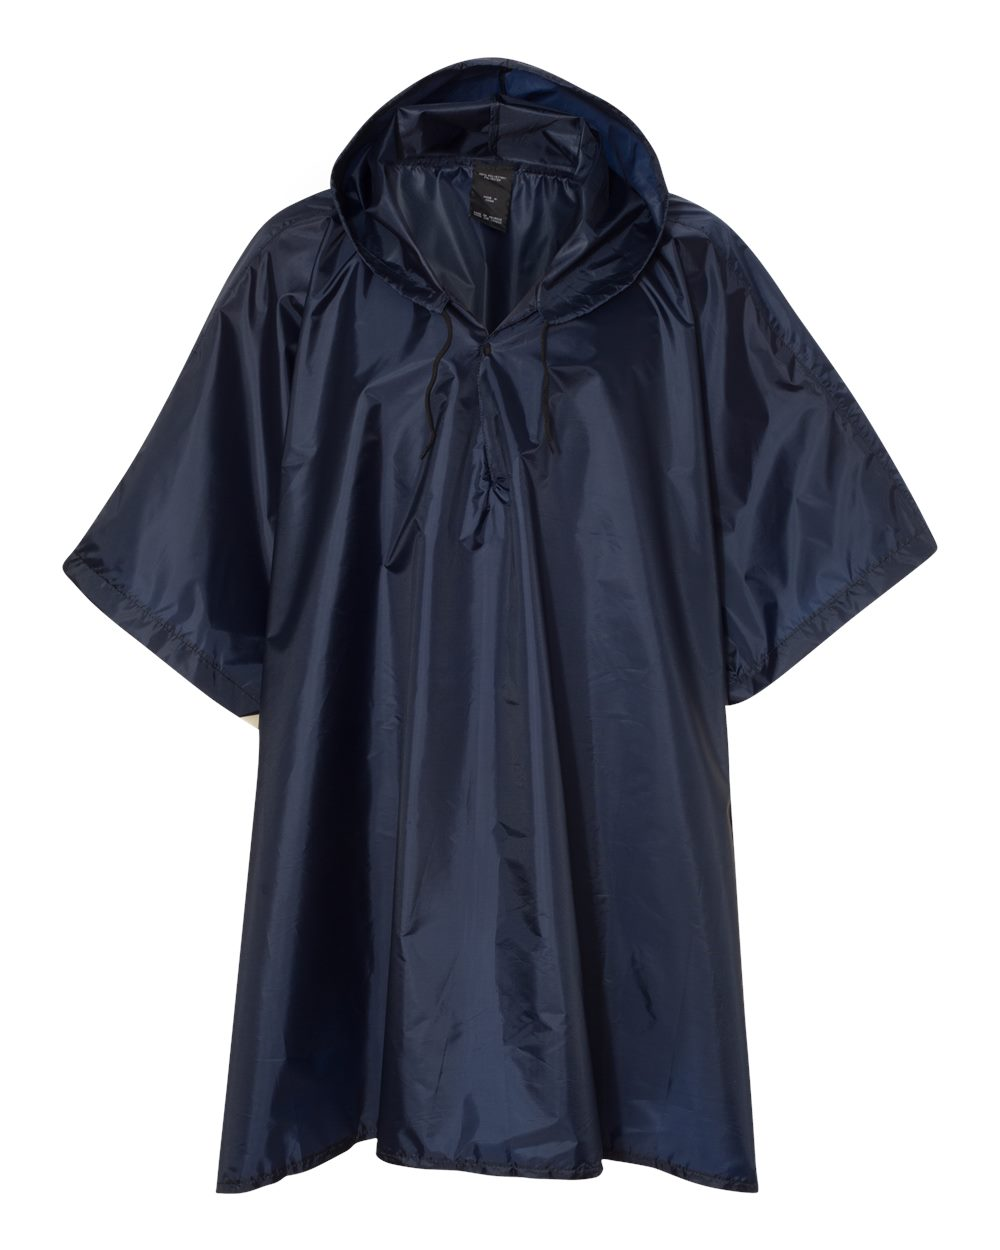 Liberty Bags A-001 Rain Poncho by Liberty Bags